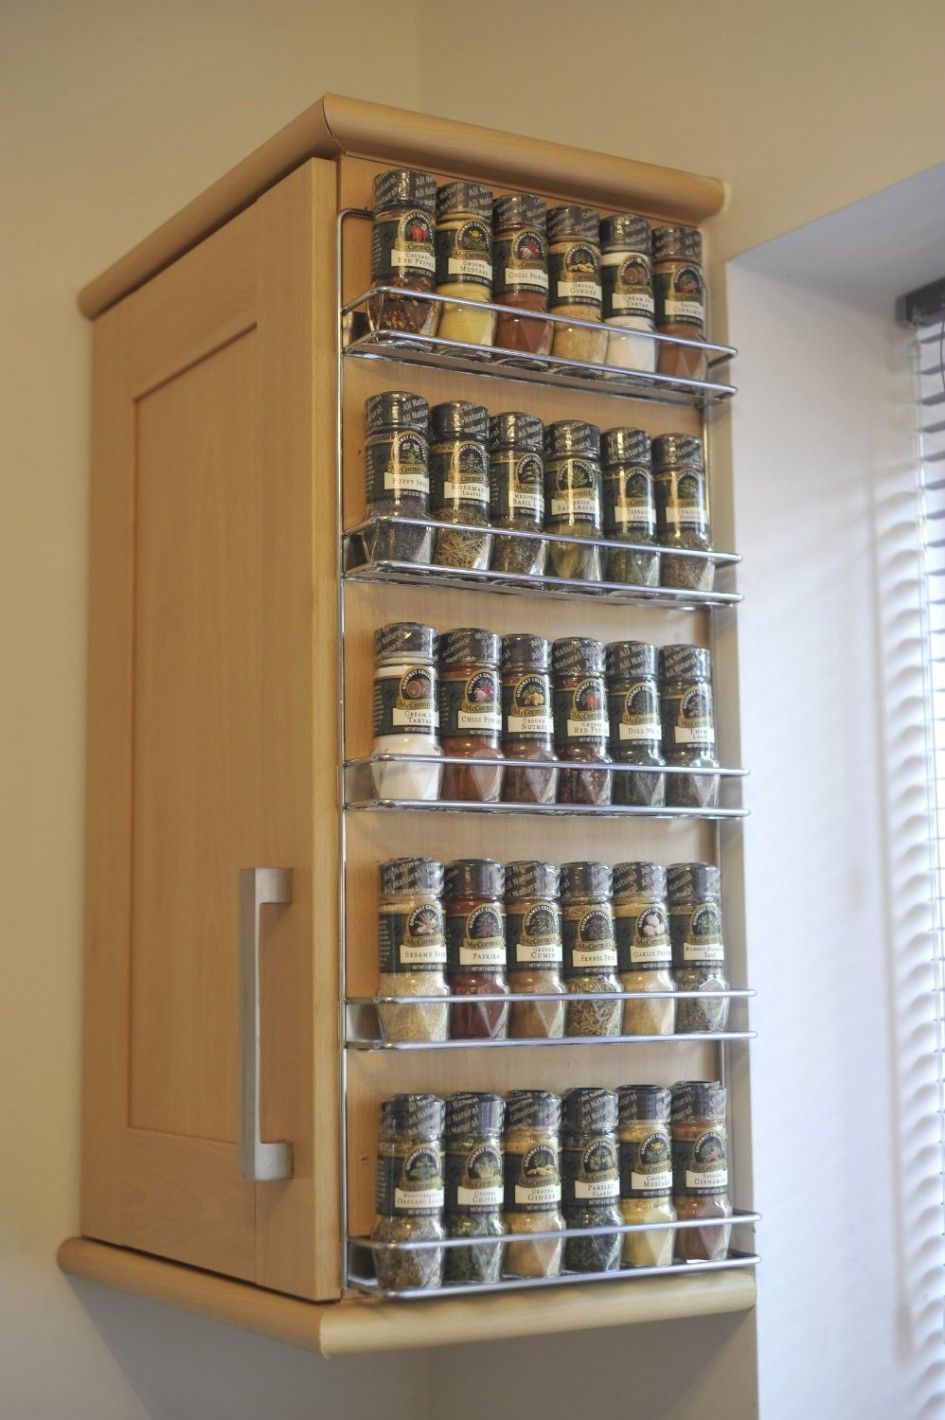 Splendid Wire Shelves for Cabinets with 5 Shelf Spice Rack ...